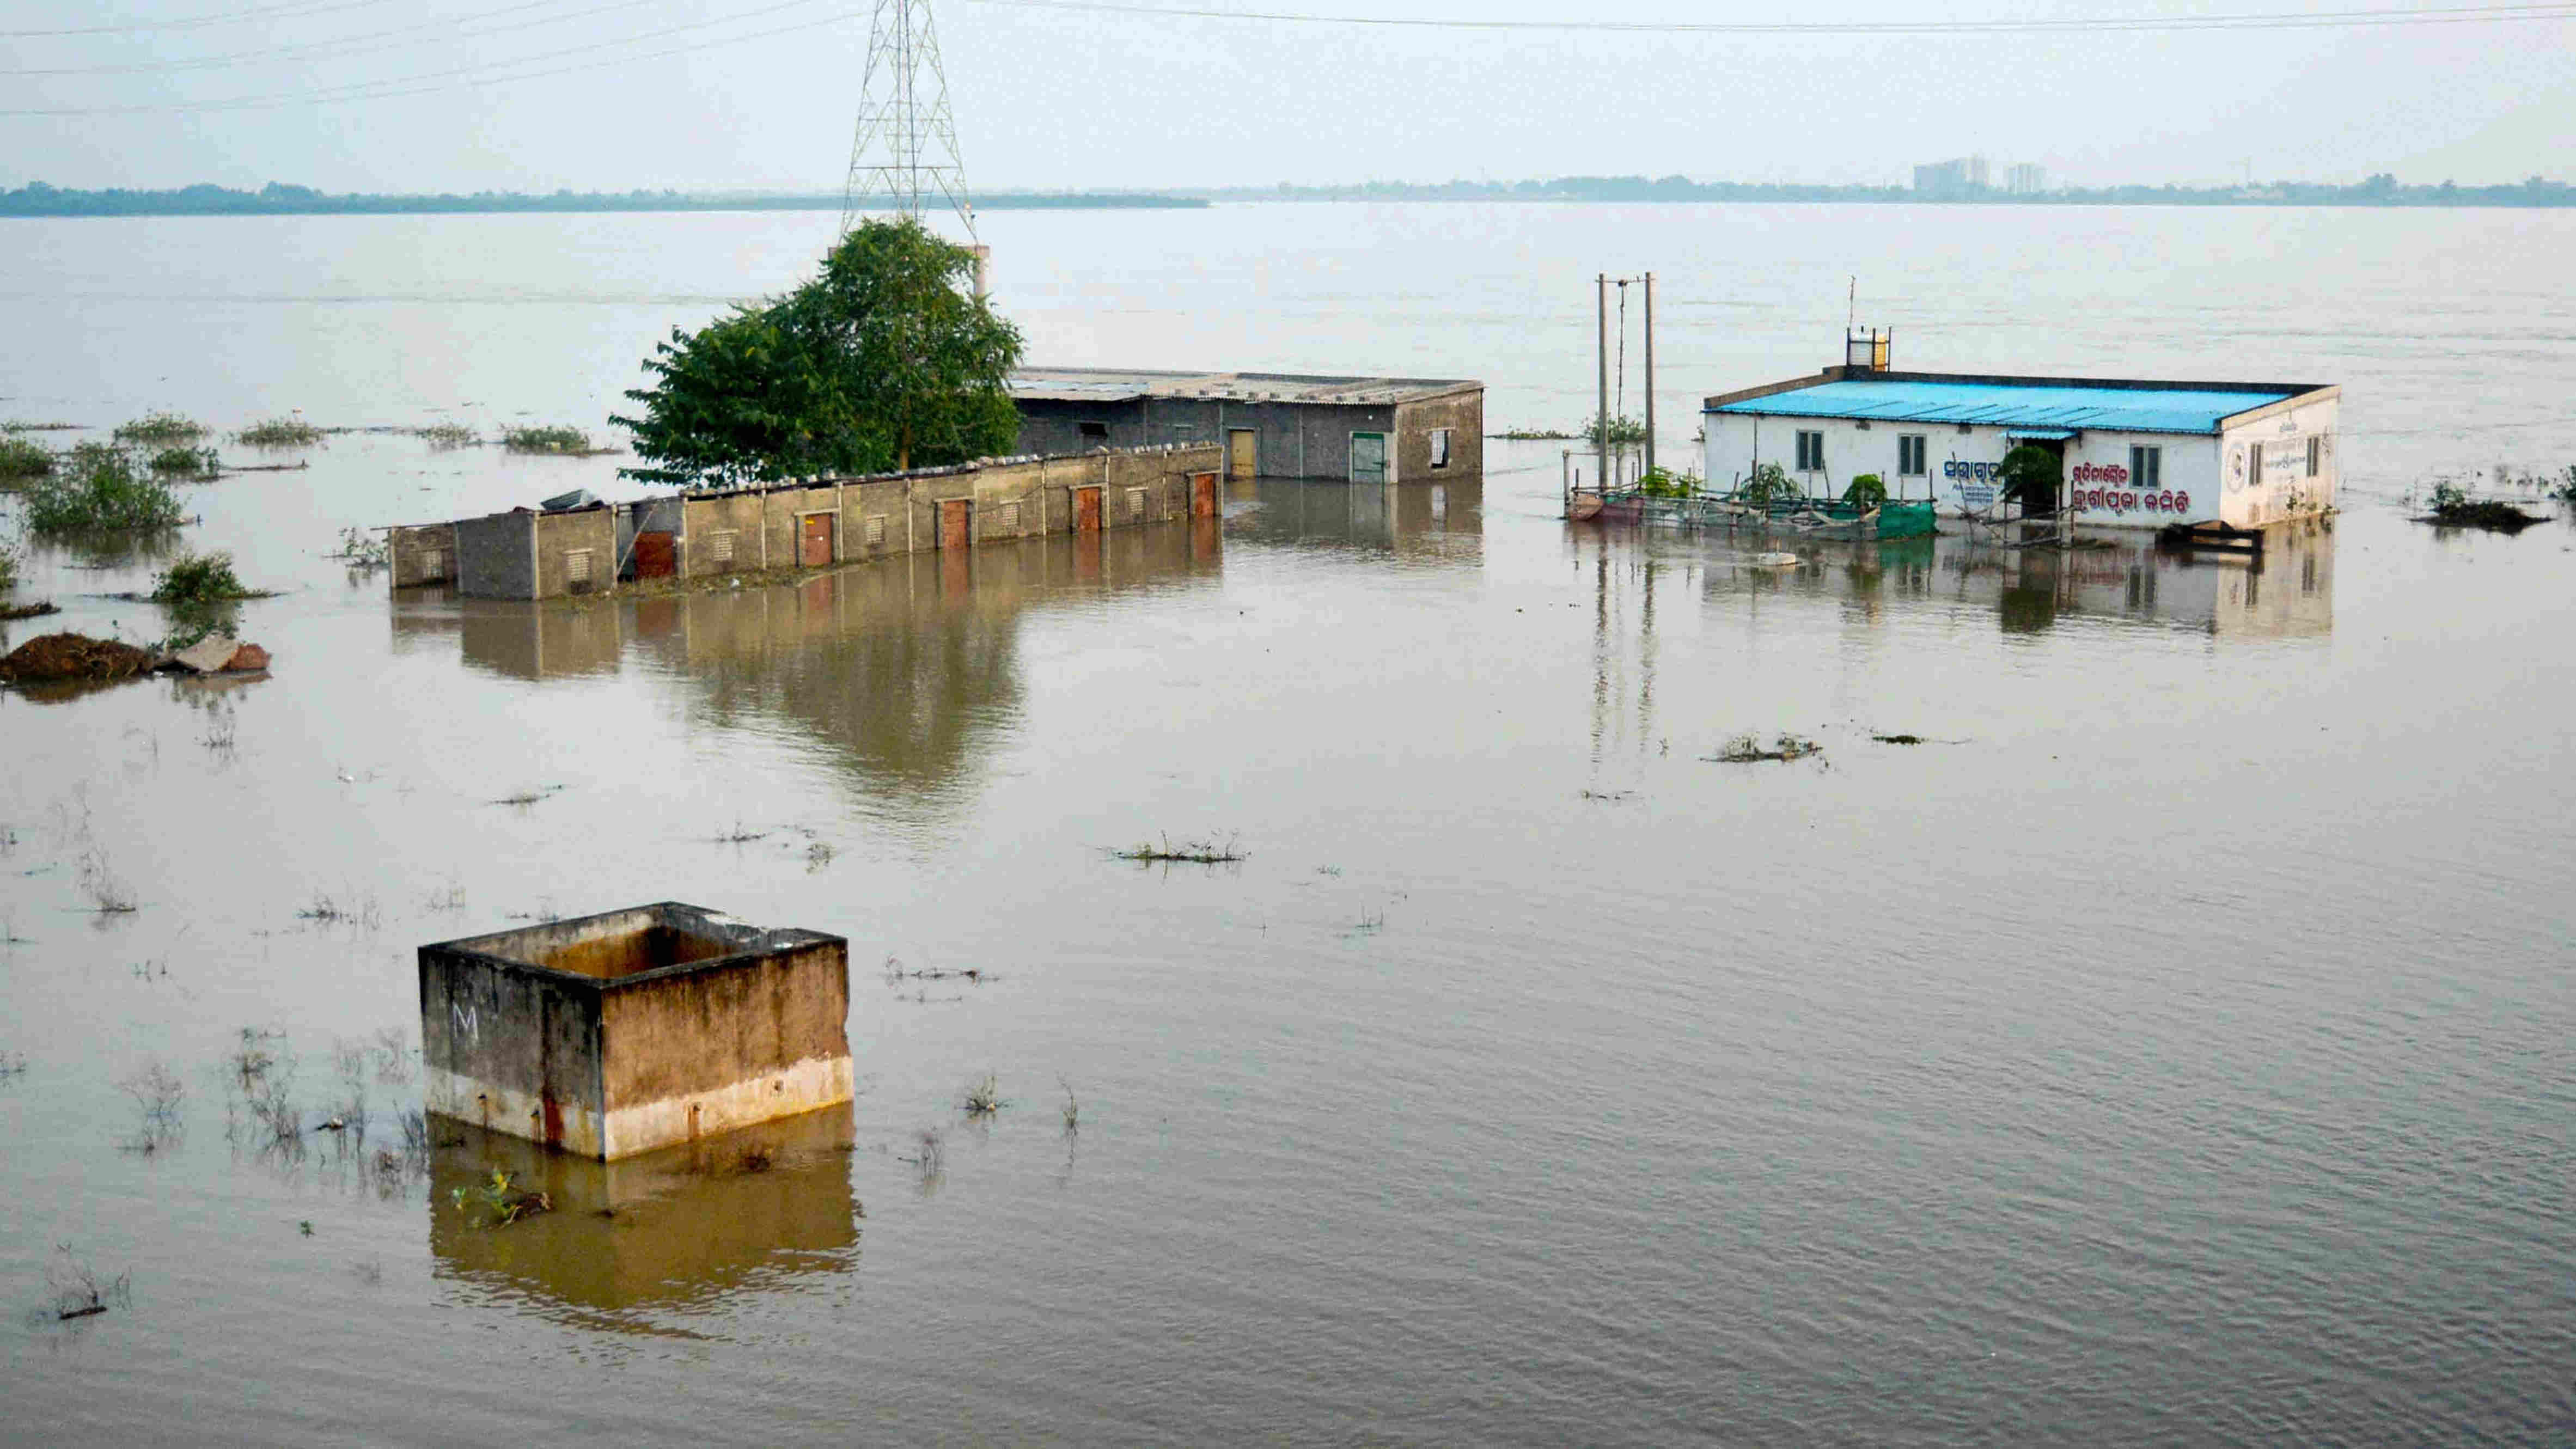 A low-lying locality submerged in flood waters following heavy rainfall, in Cuttack district, Sunday, Aug. 30, 2020.